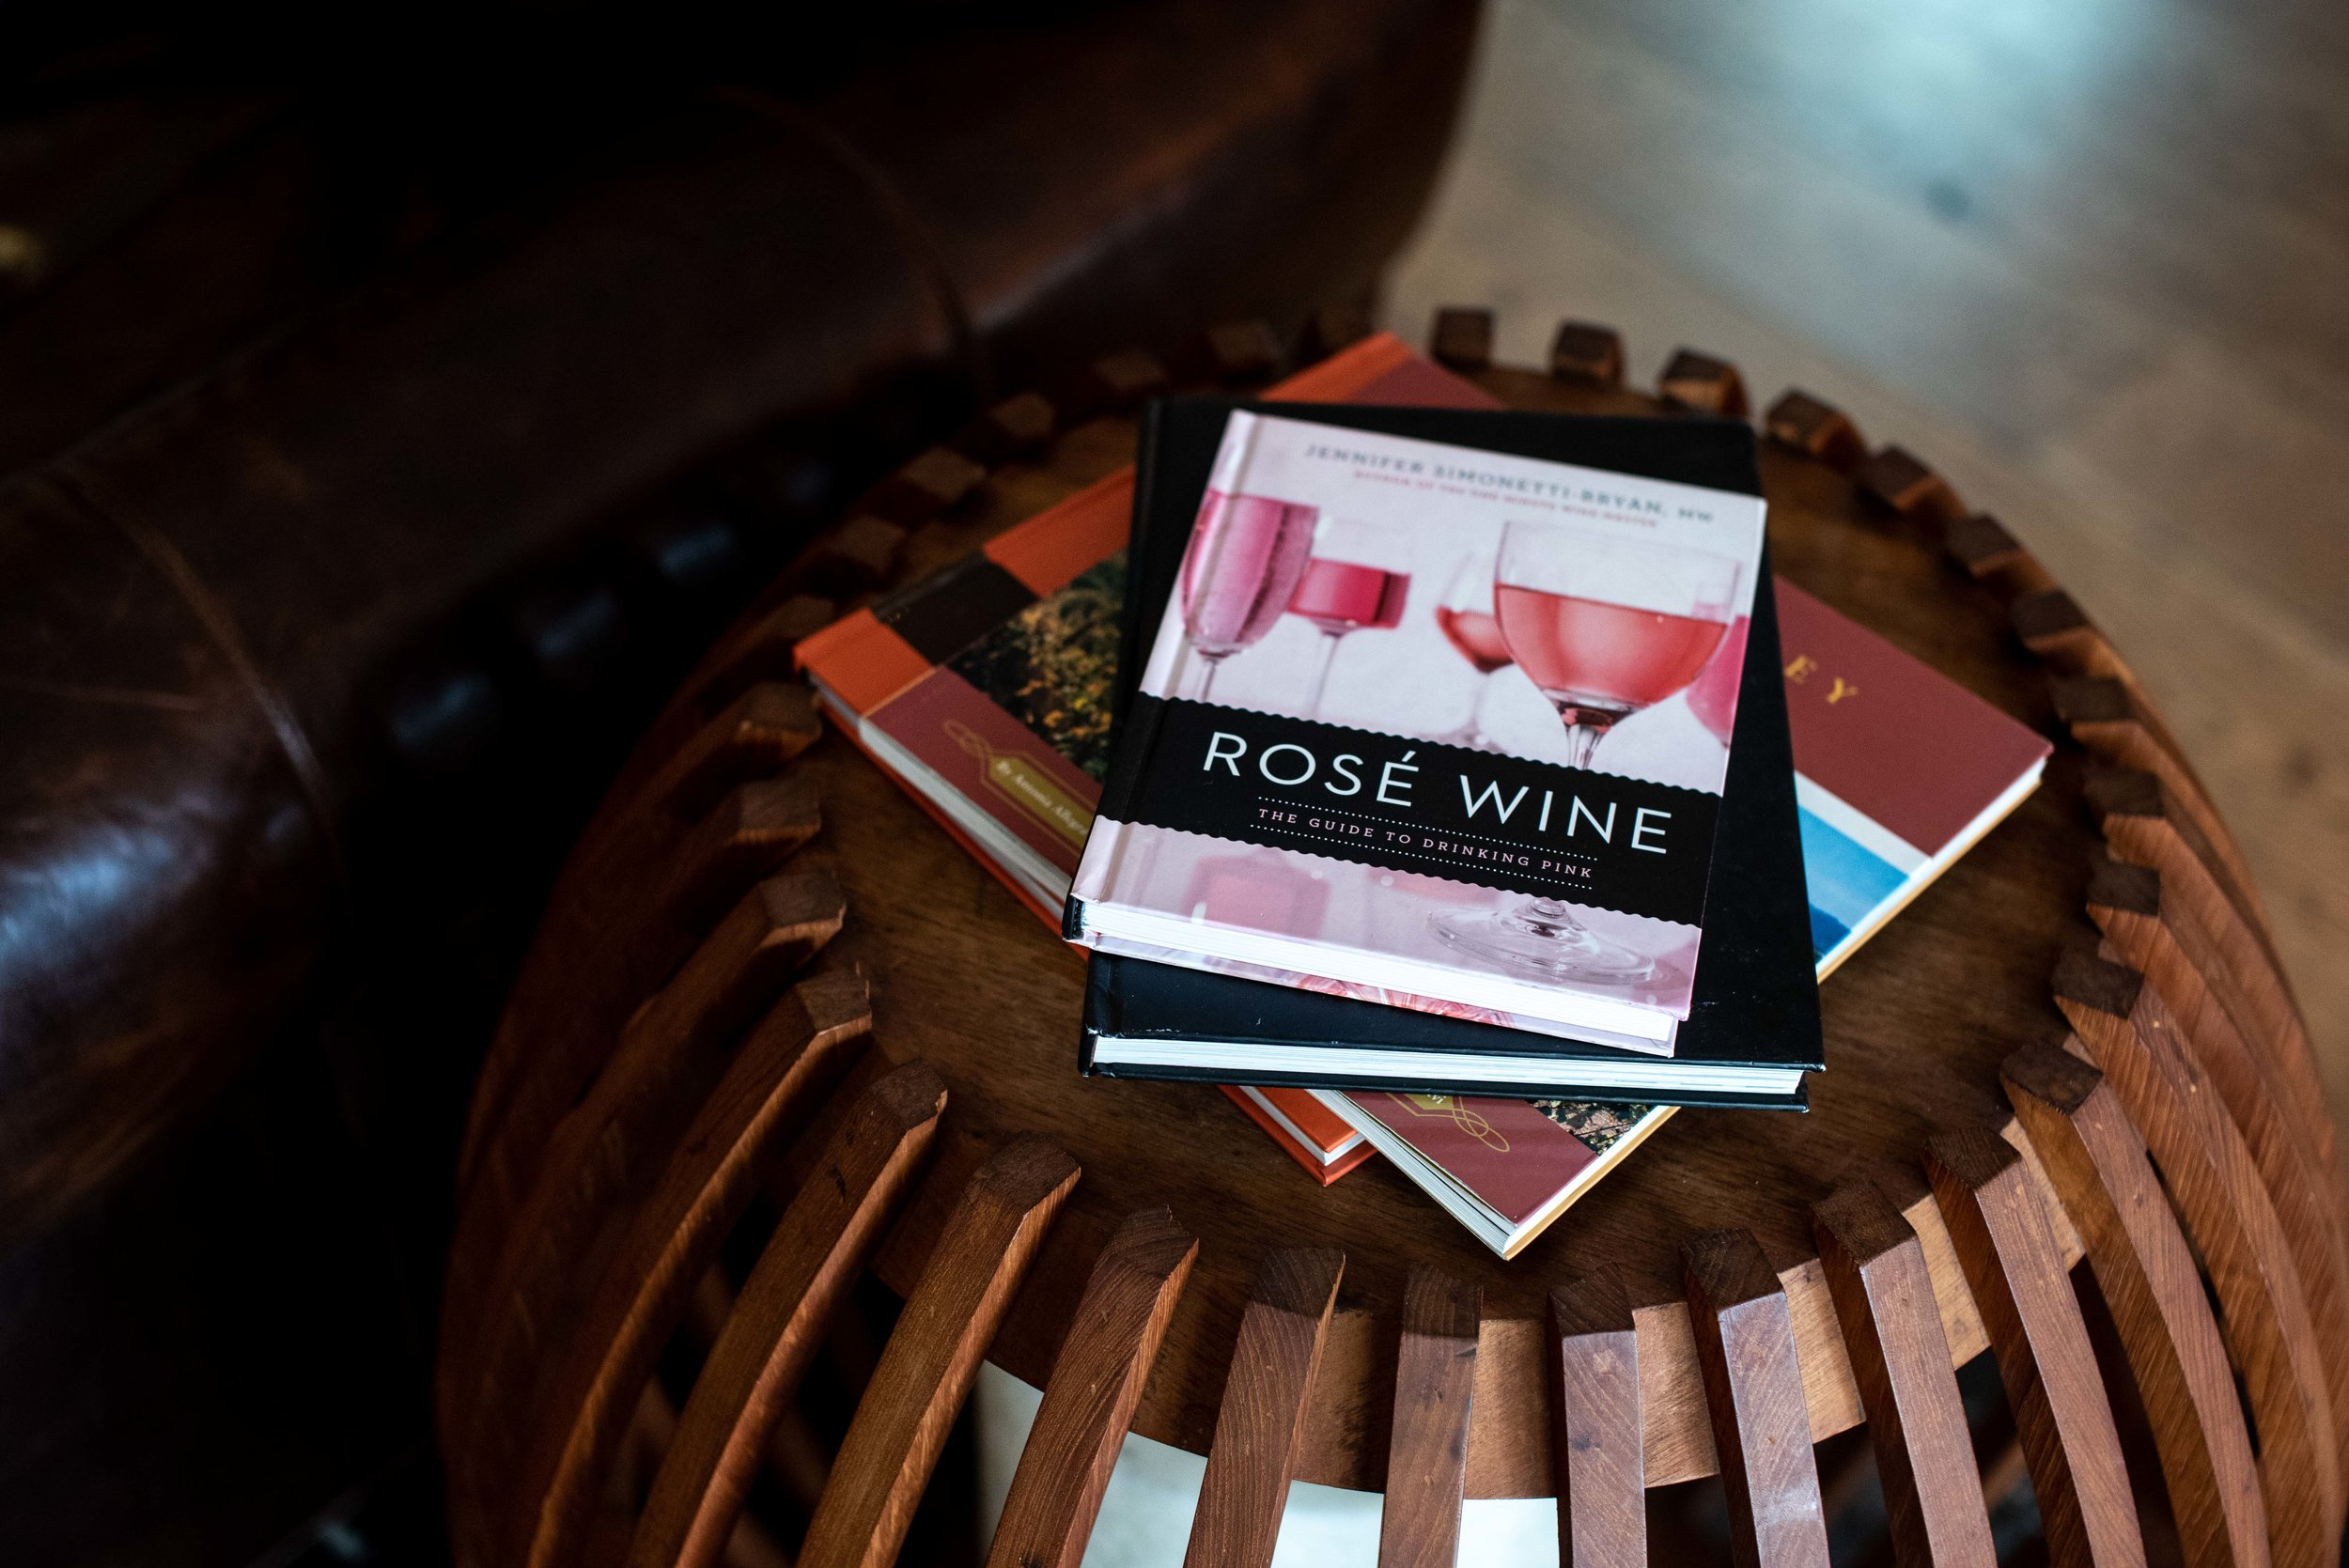 Of course there are books on wine.